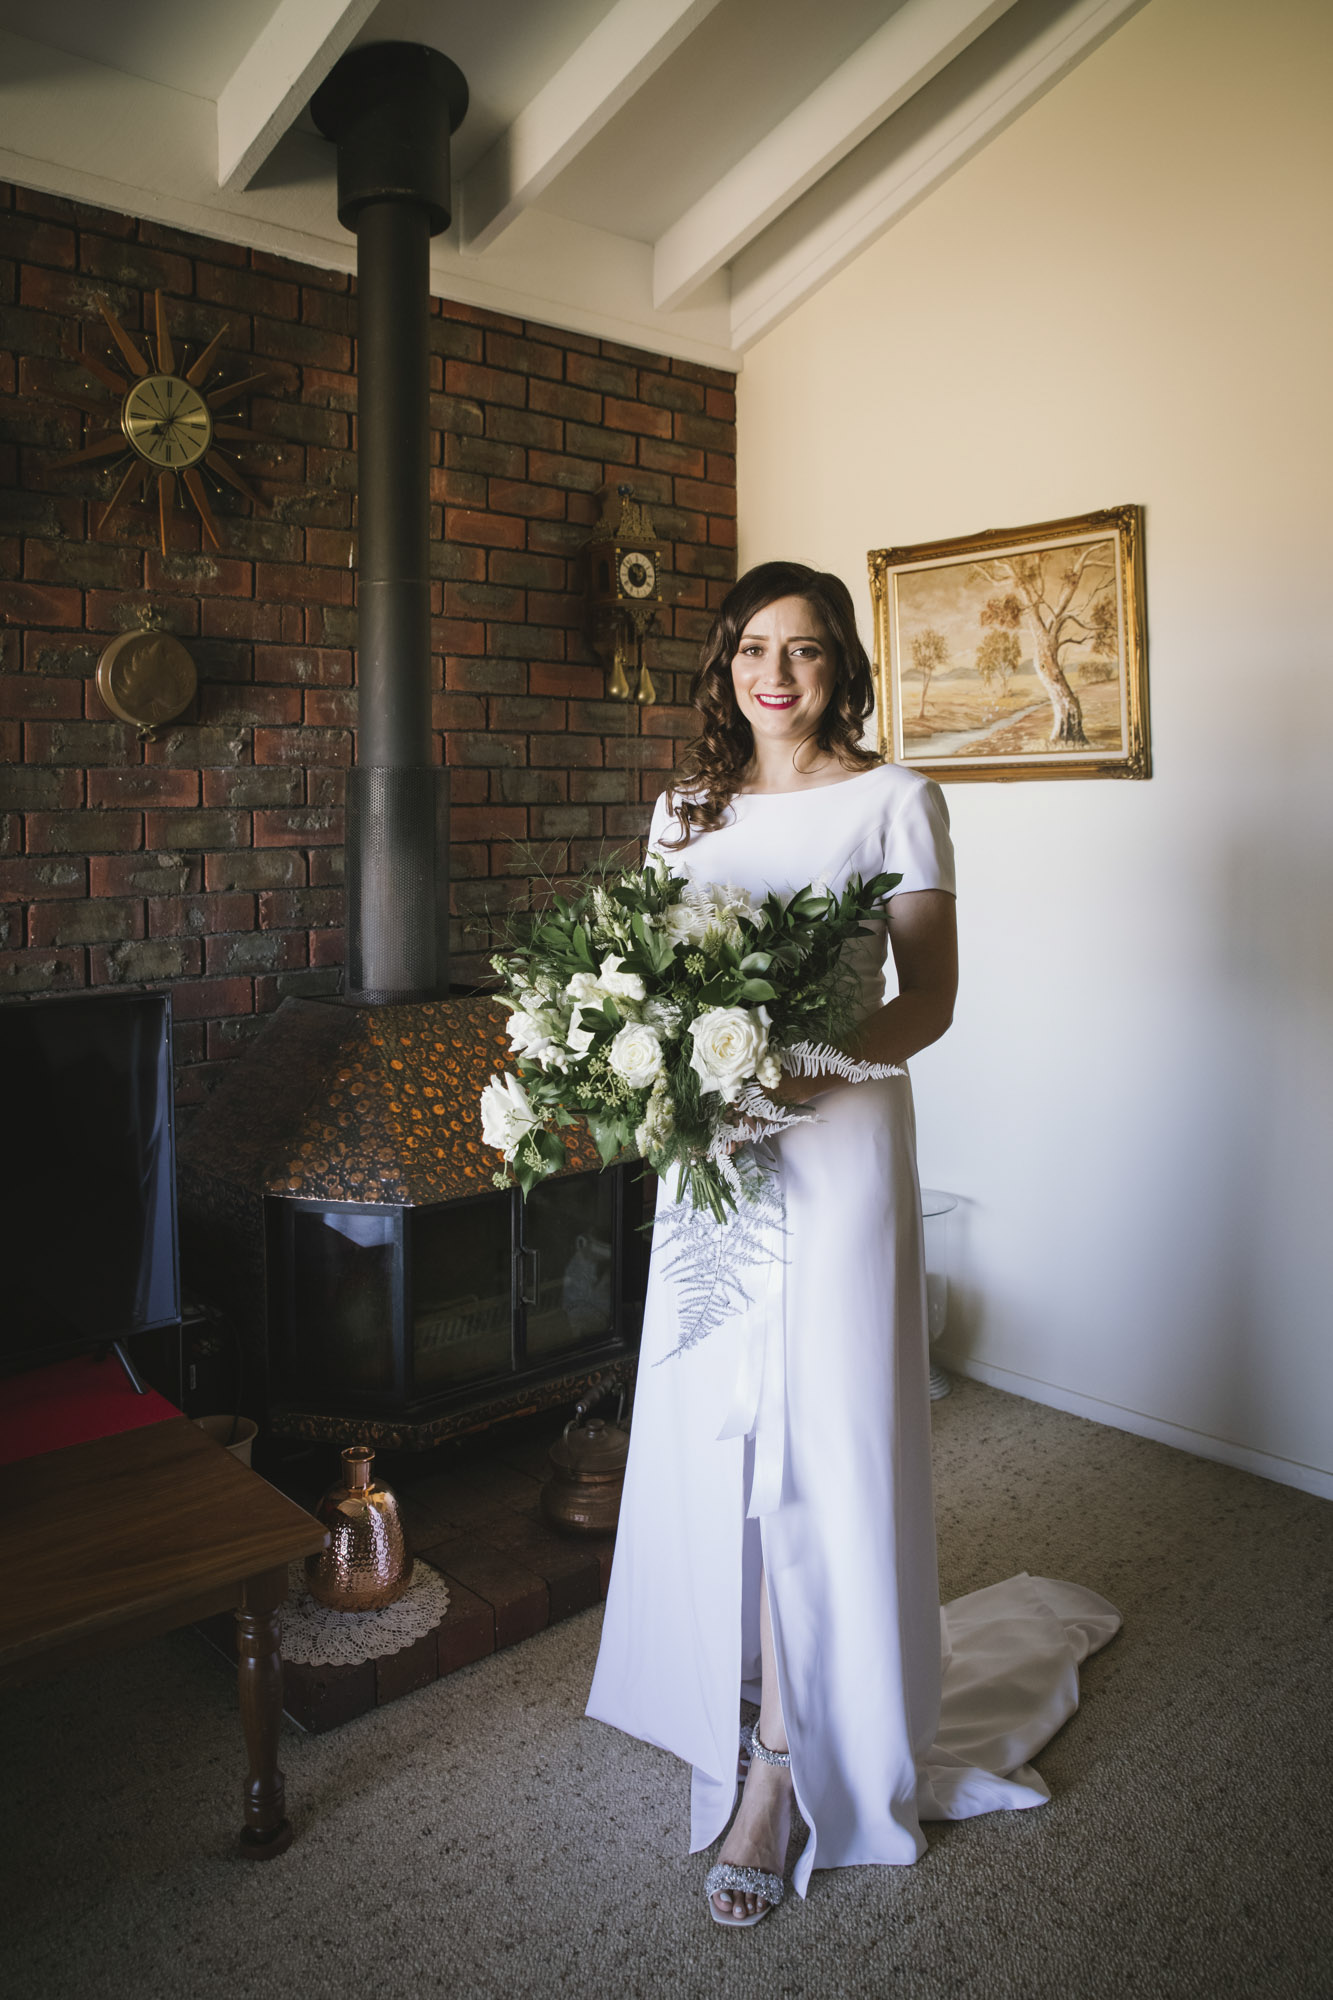 Angie-Roe-Photography-Wedding-Perth-Northam-Wheatbelt-Country-Rural (17).jpg